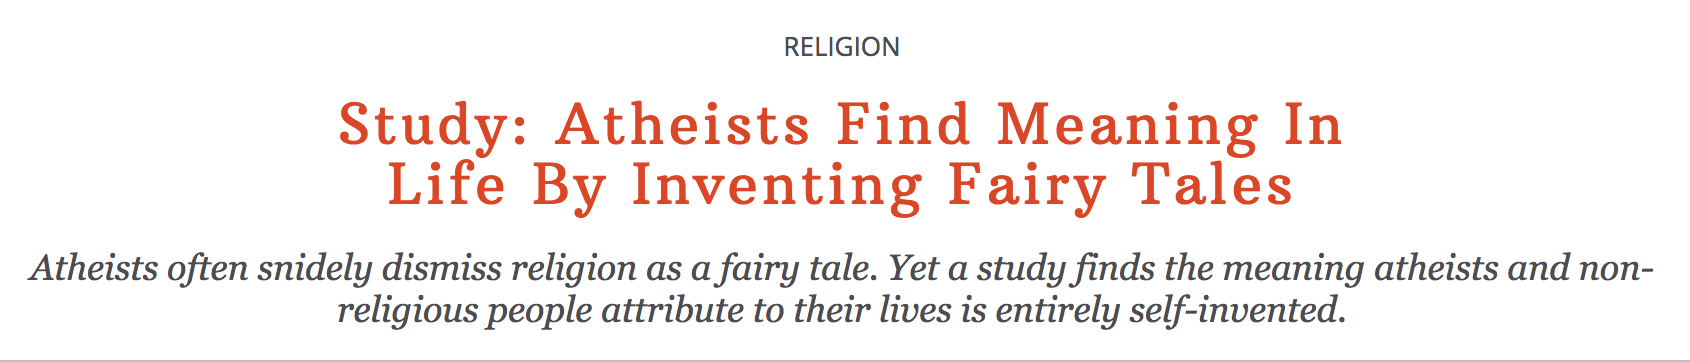 Snide believer says atheists make up fairy tales to find